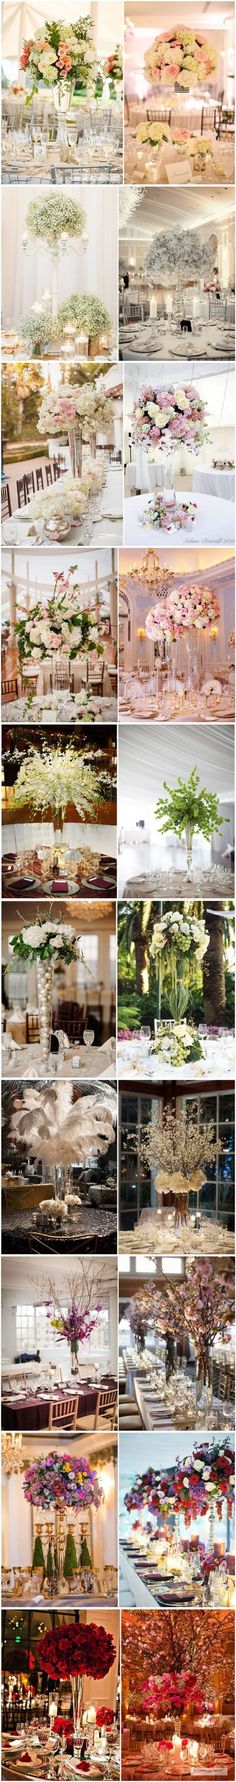 TOP 20 Tall wedding centerpiece ideas/top left is pretty, not quite the way the flowers are arranged/ and only eucalyptus Tall Wedding Centerpieces, Wedding Table Decorations, Wedding Flower Arrangements, Flower Centerpieces, Wedding Bouquets, Centerpiece Ideas, Quinceanera Decorations, Tall Centerpiece, Tall Vases